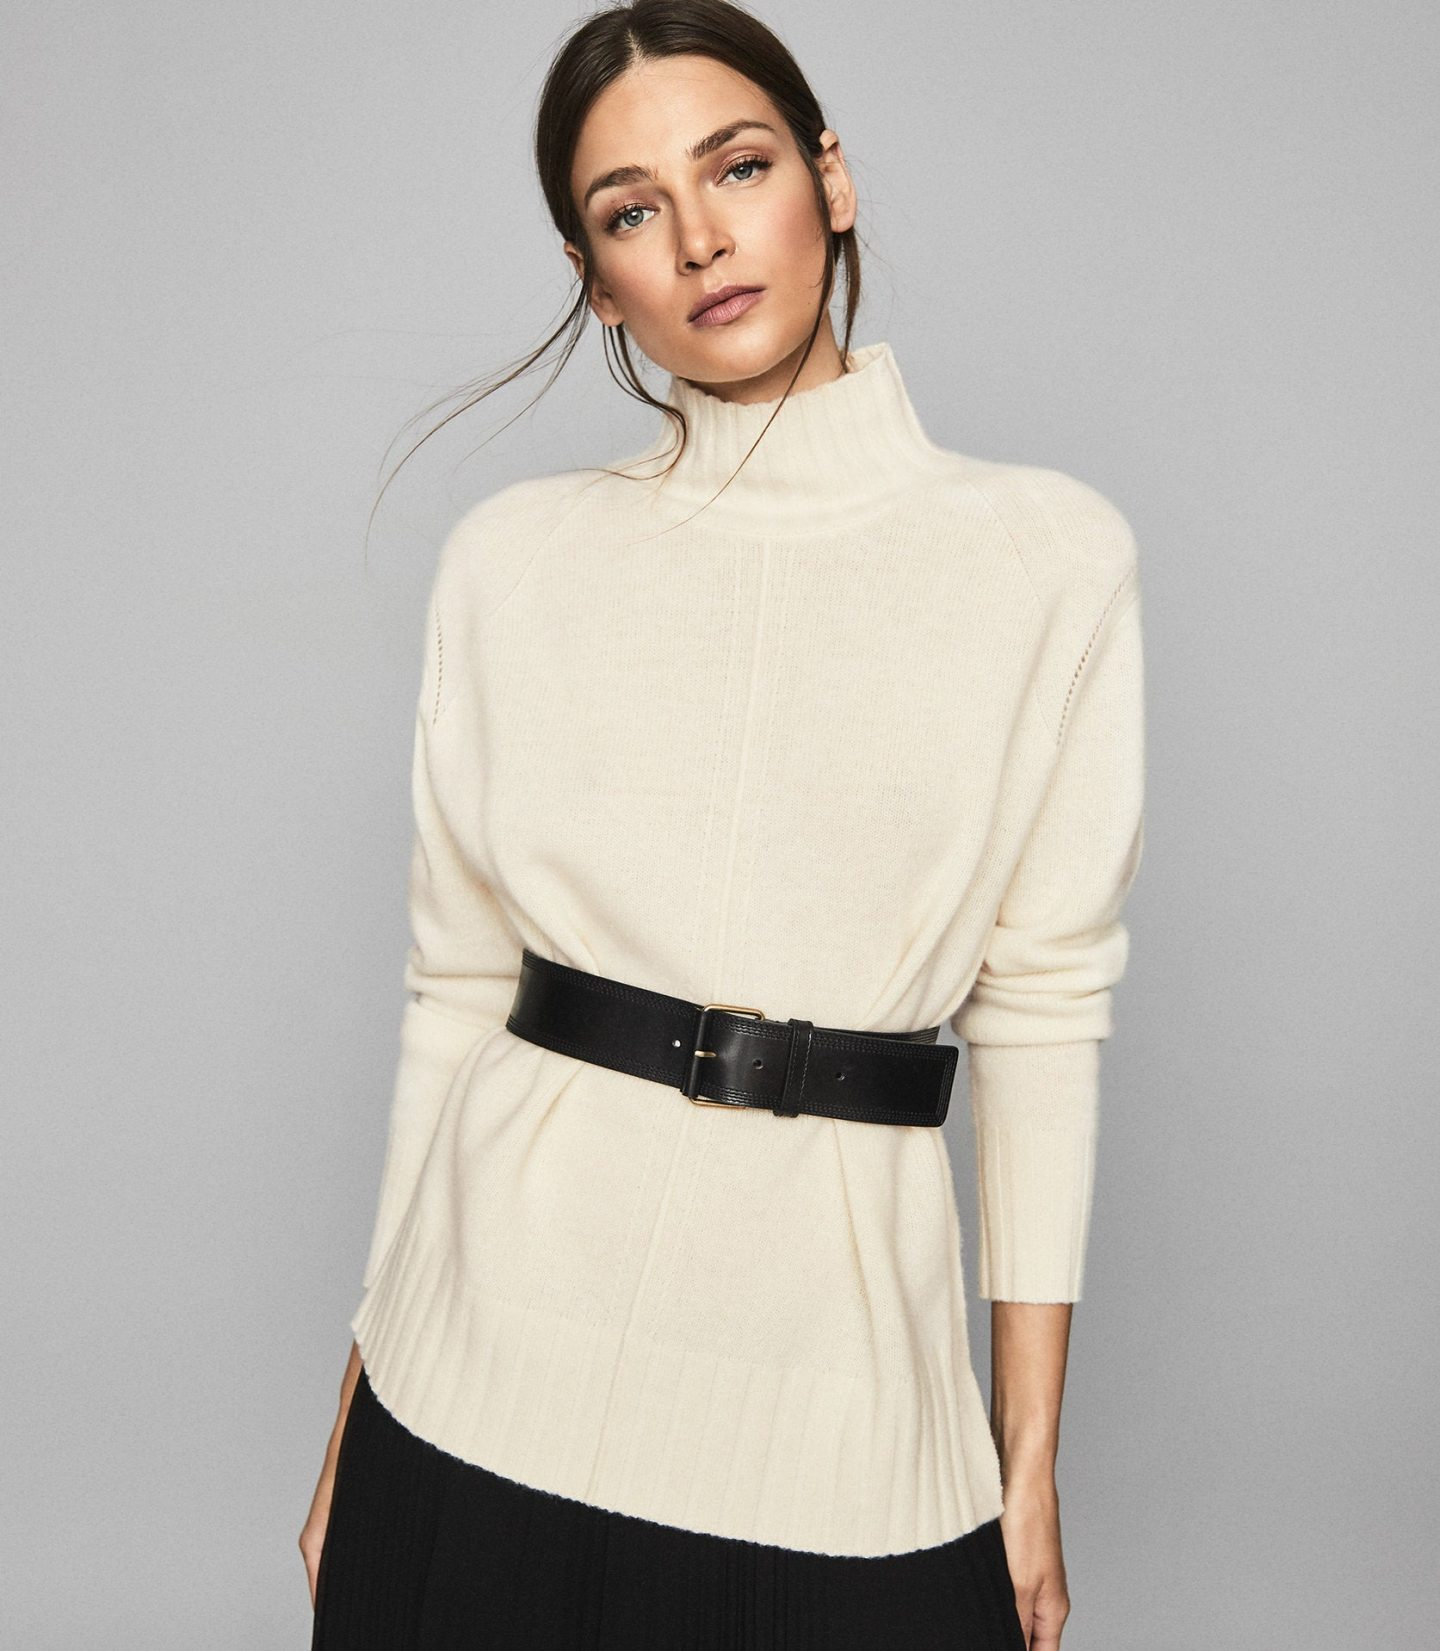 The Knitwear You Need to Elevate Your WFH Style